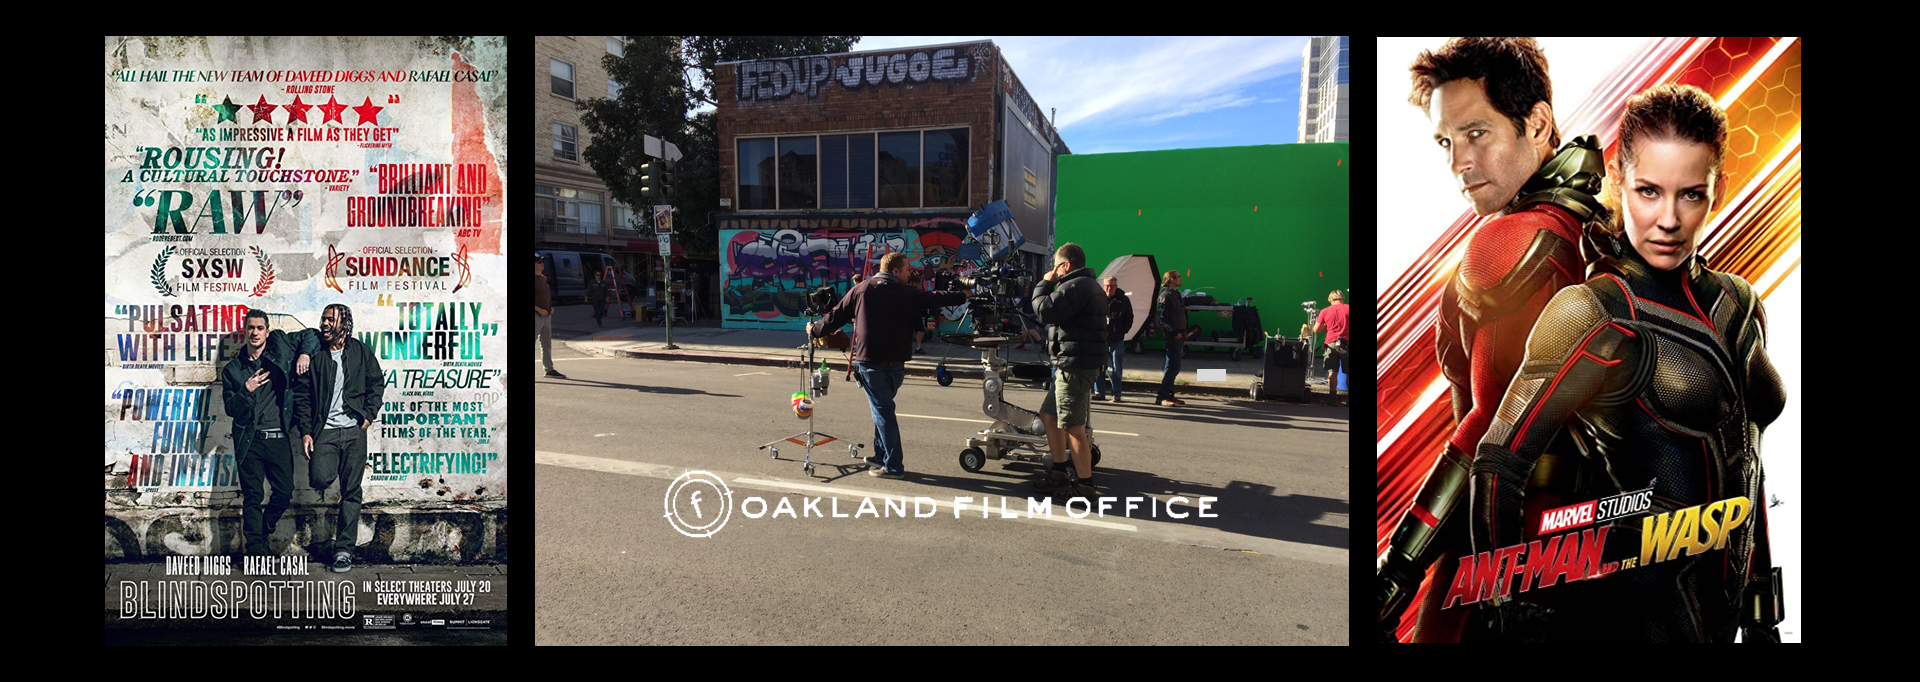 Blindspotting Oakland City street film shoot and Antman 2 posters Oakland Film Office website page header collage